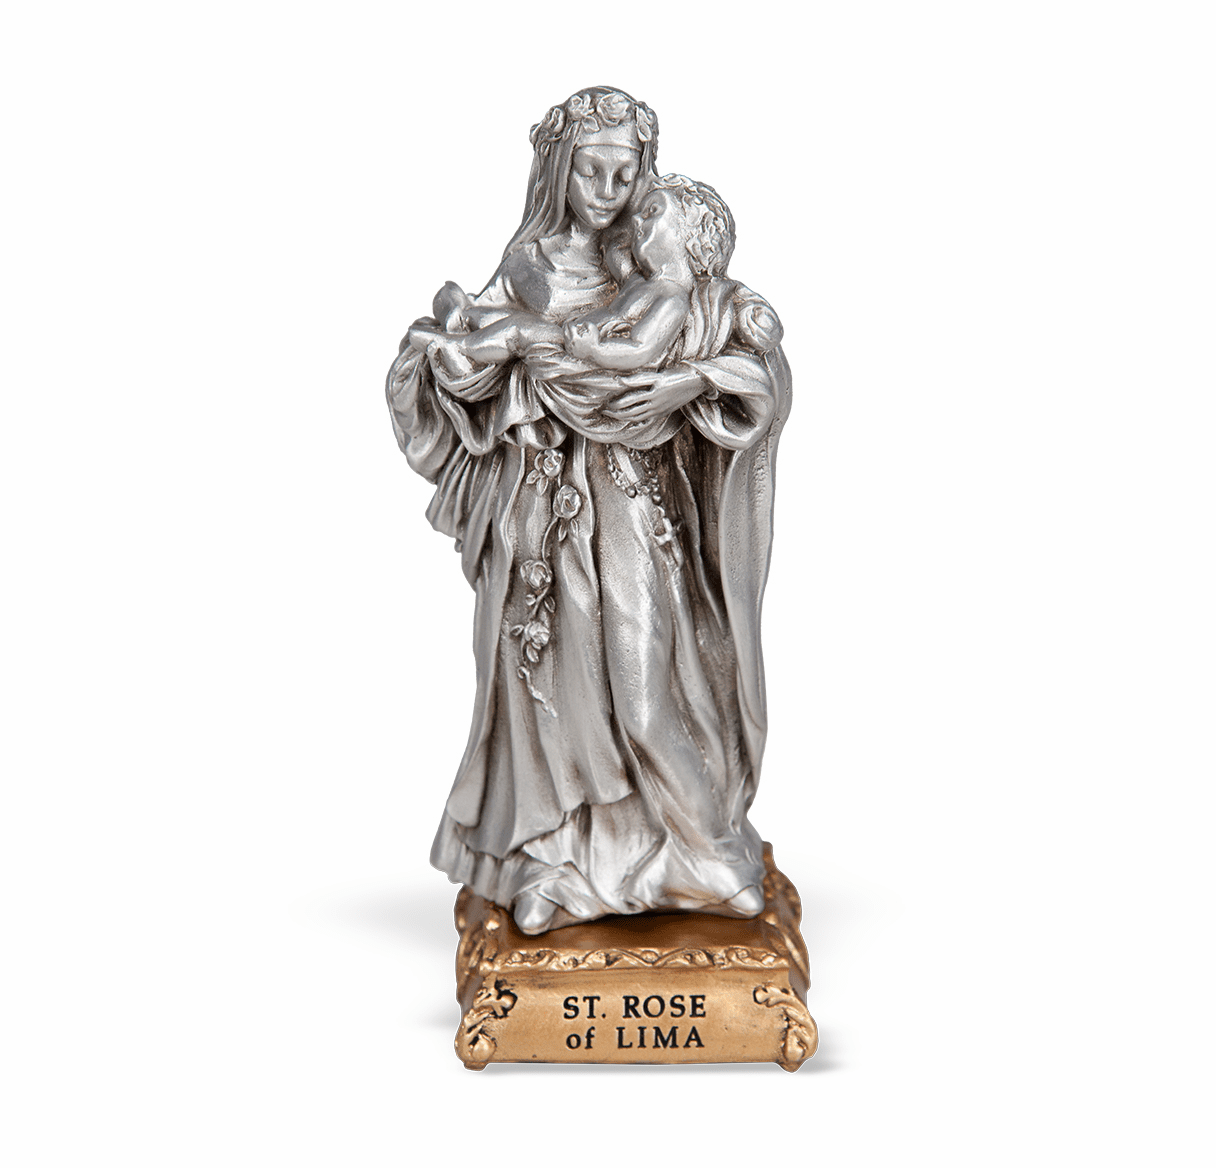 St Rose of Lima Patron Saint Pewter Statue on Gold Tone Base by Hirten